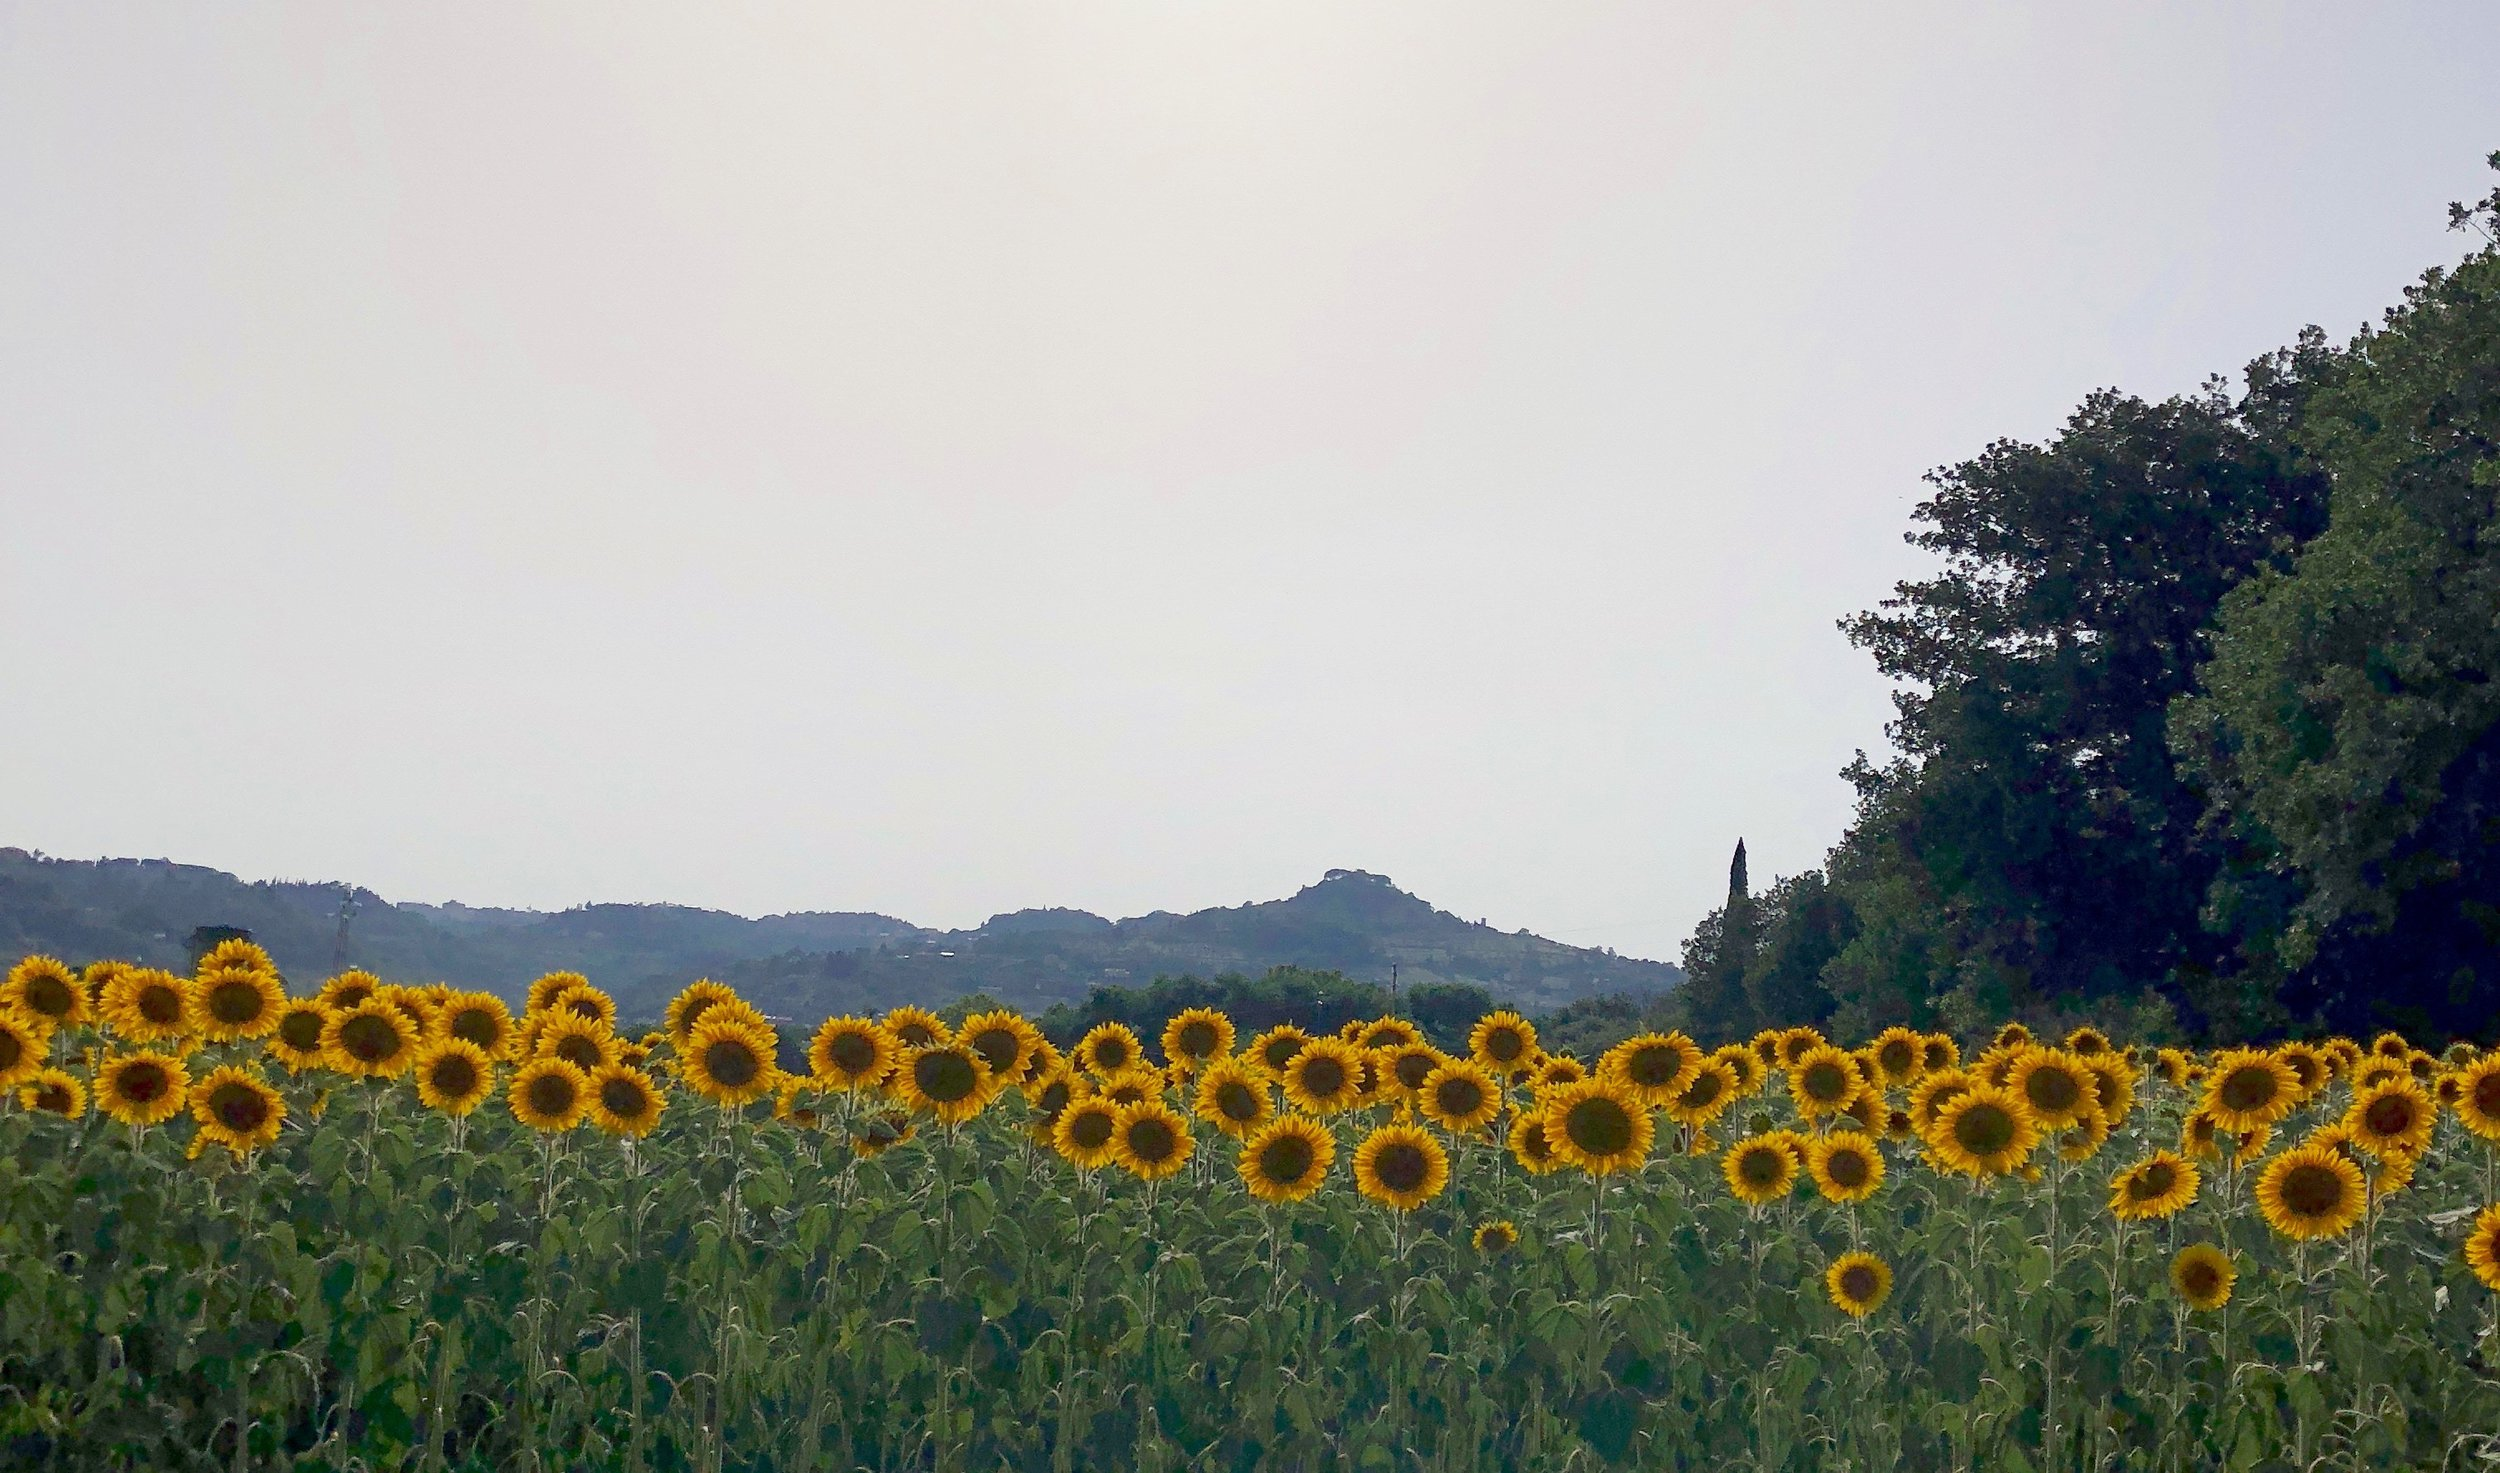 A sunflower field not far from the highway in Umbria, Italy.